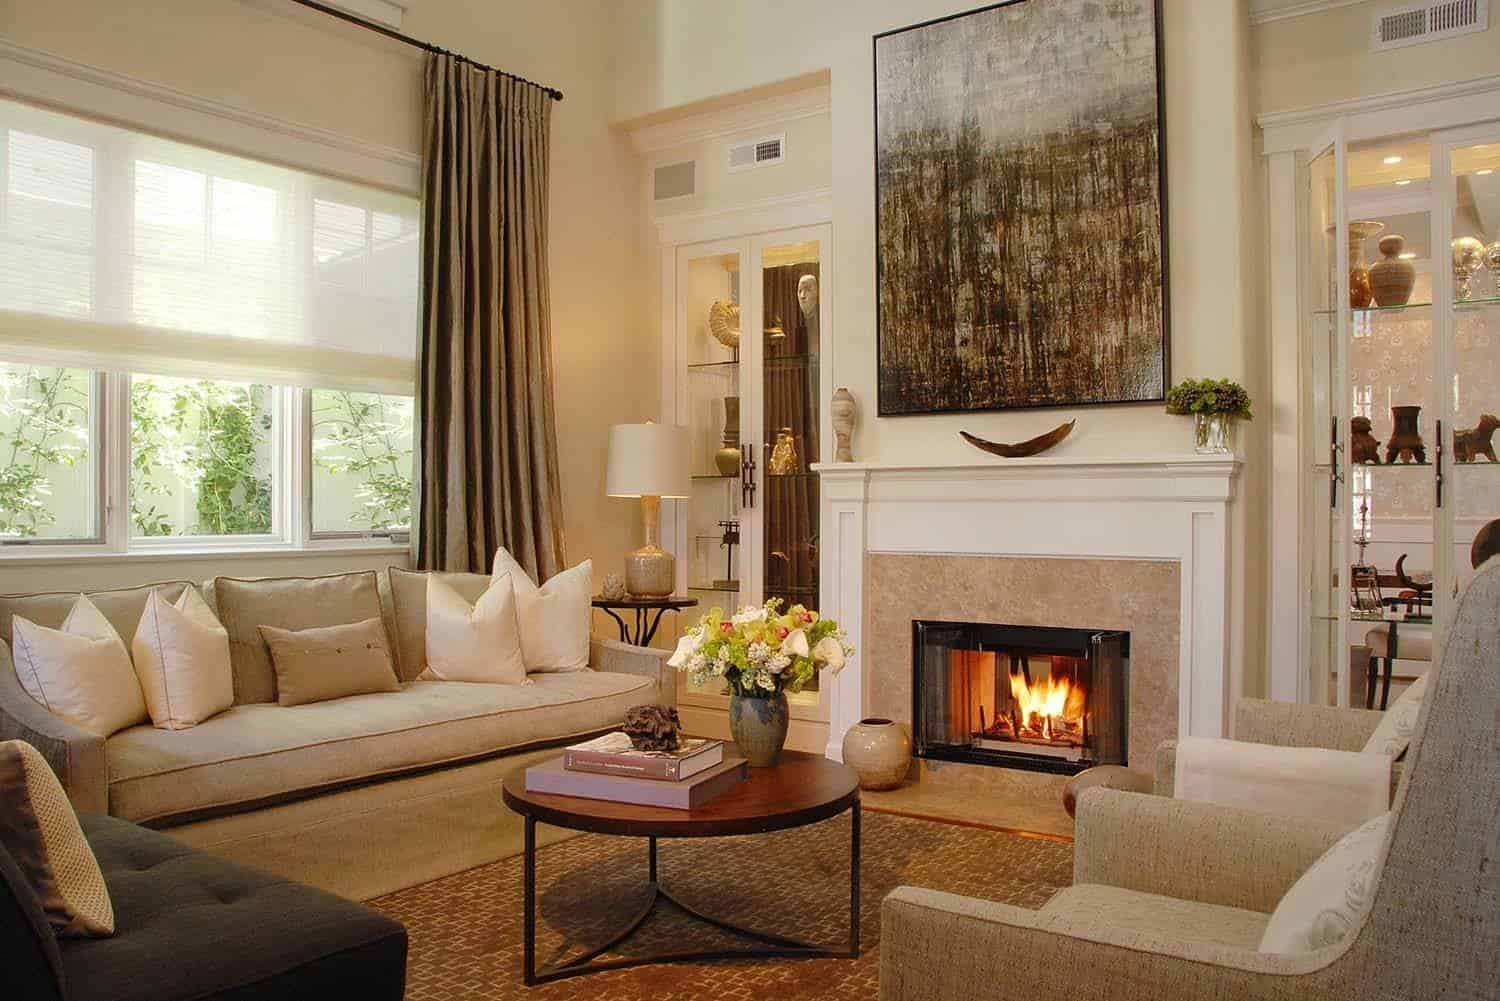 Cozy Fireplace Ideas-26-1 Kindesign